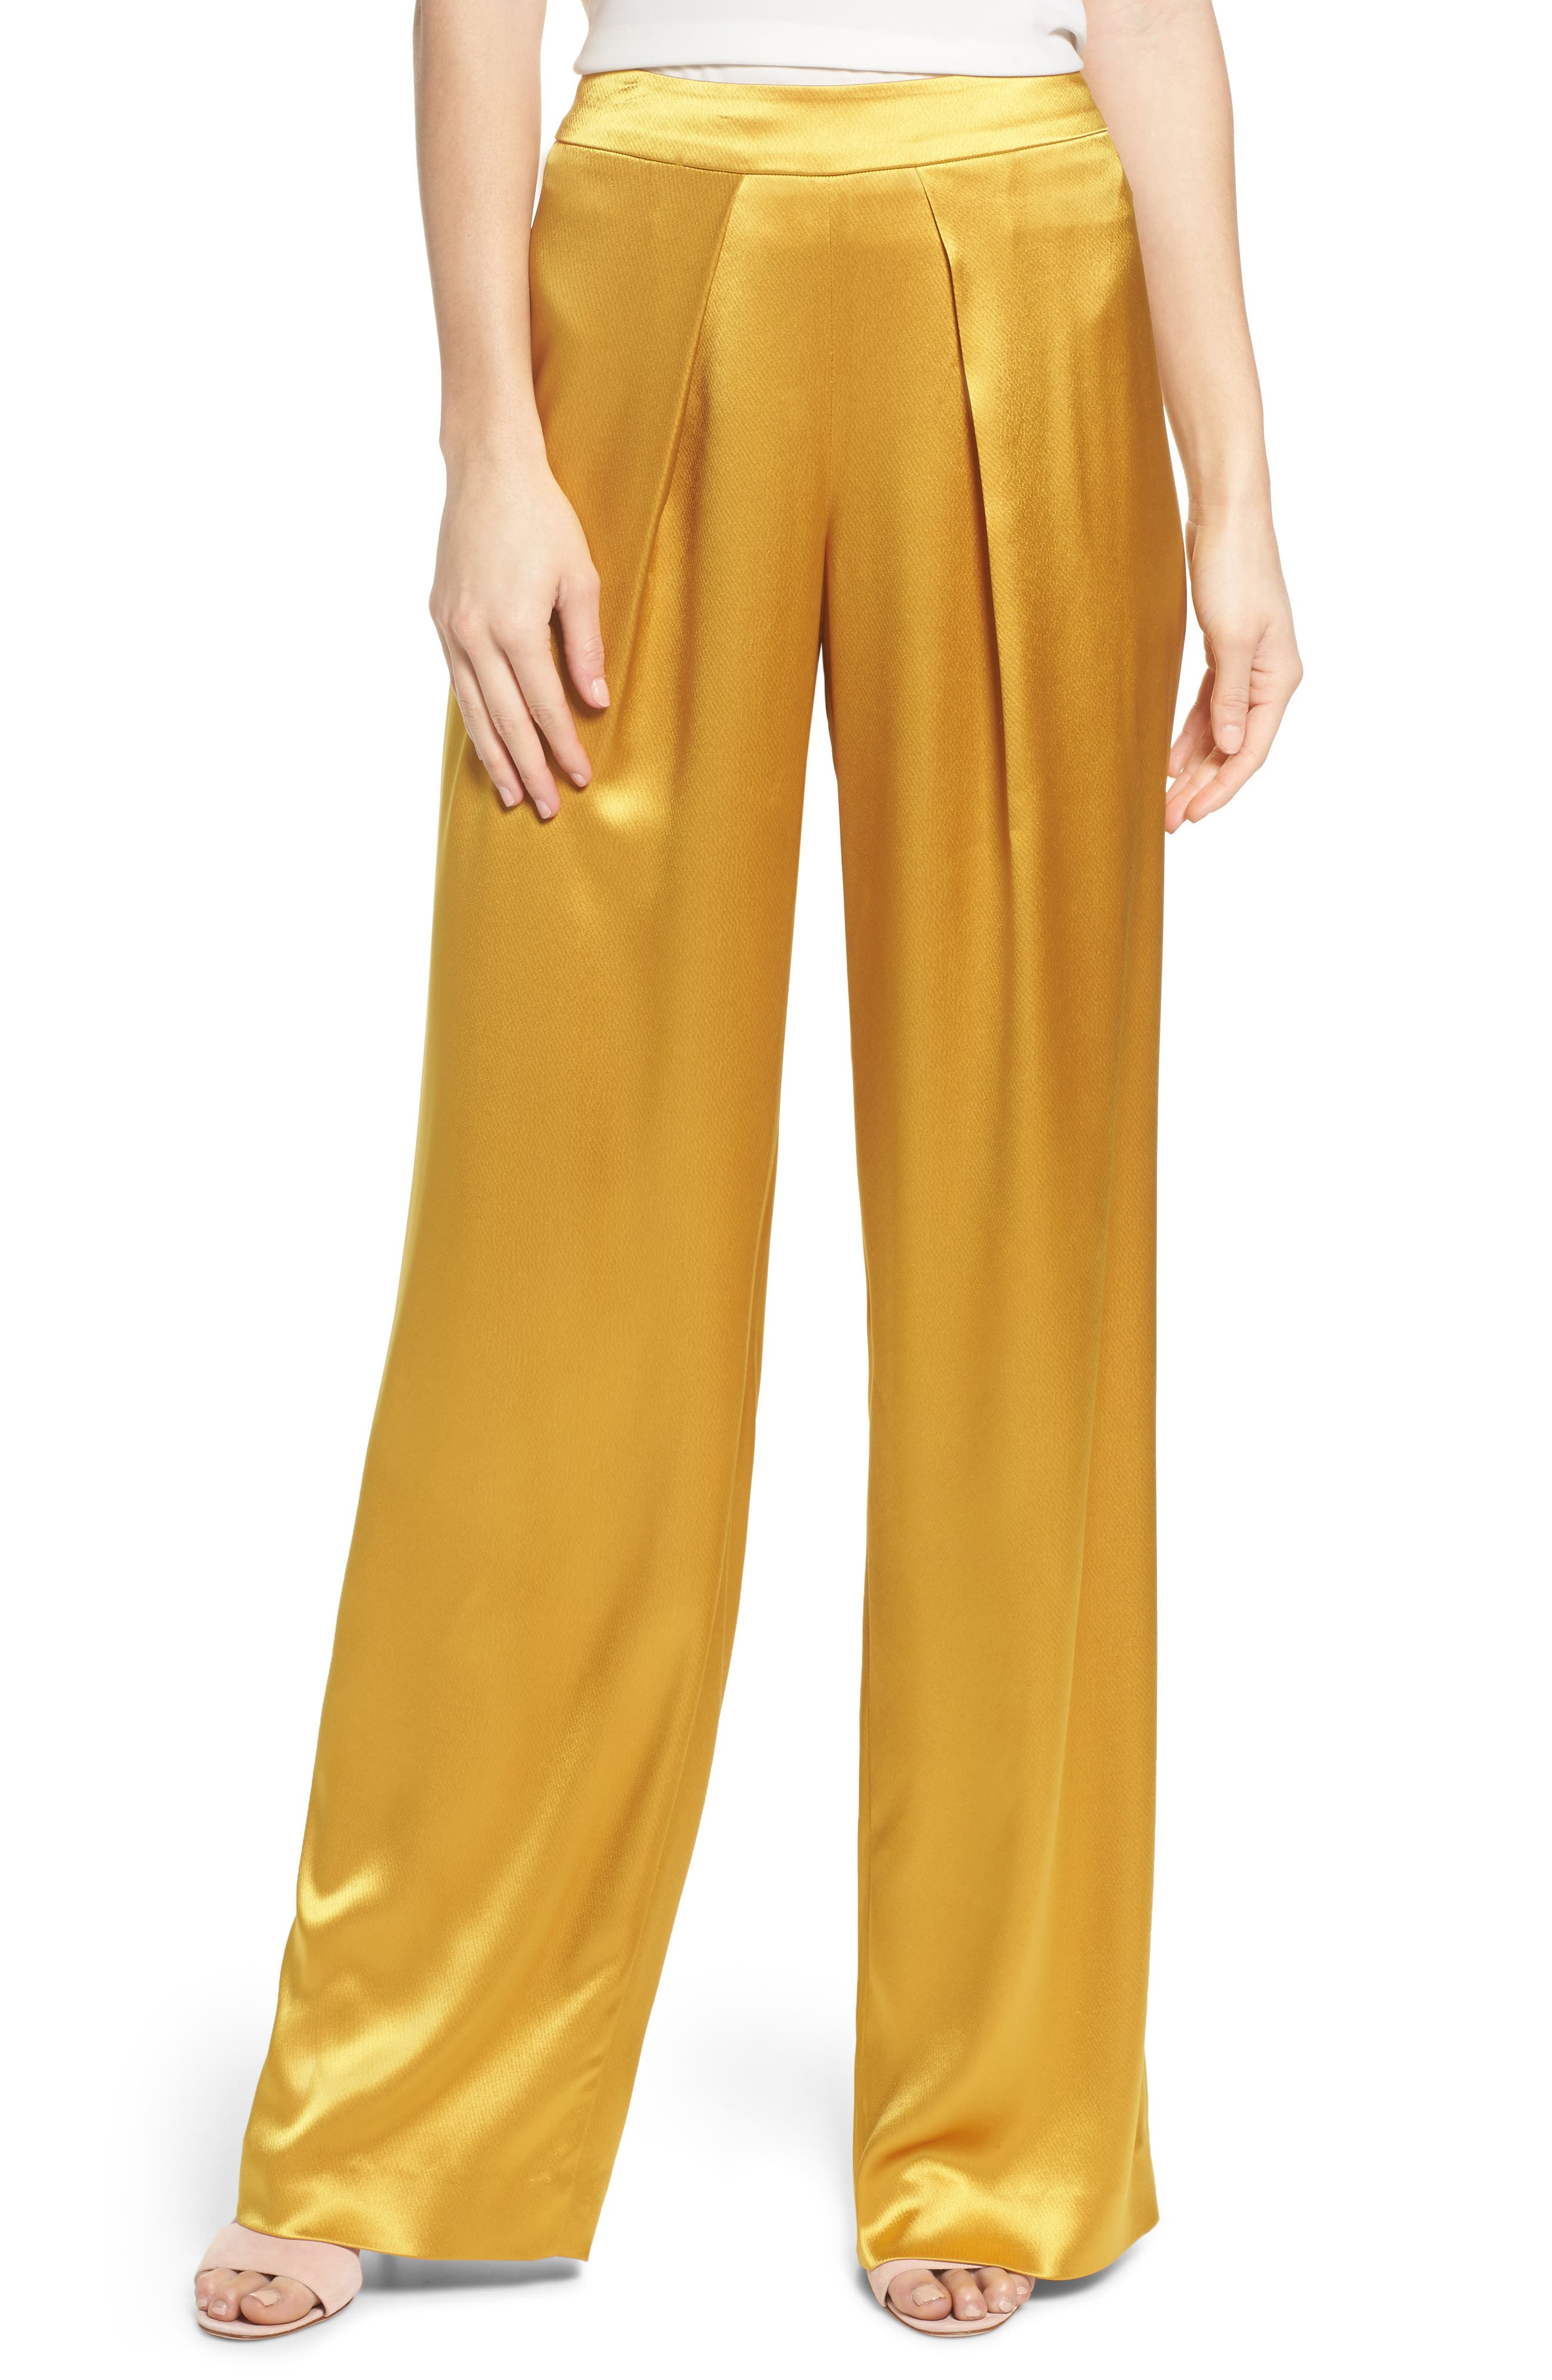 Fancy Pleated Front Satin Pants,                         Main,                         color, 700